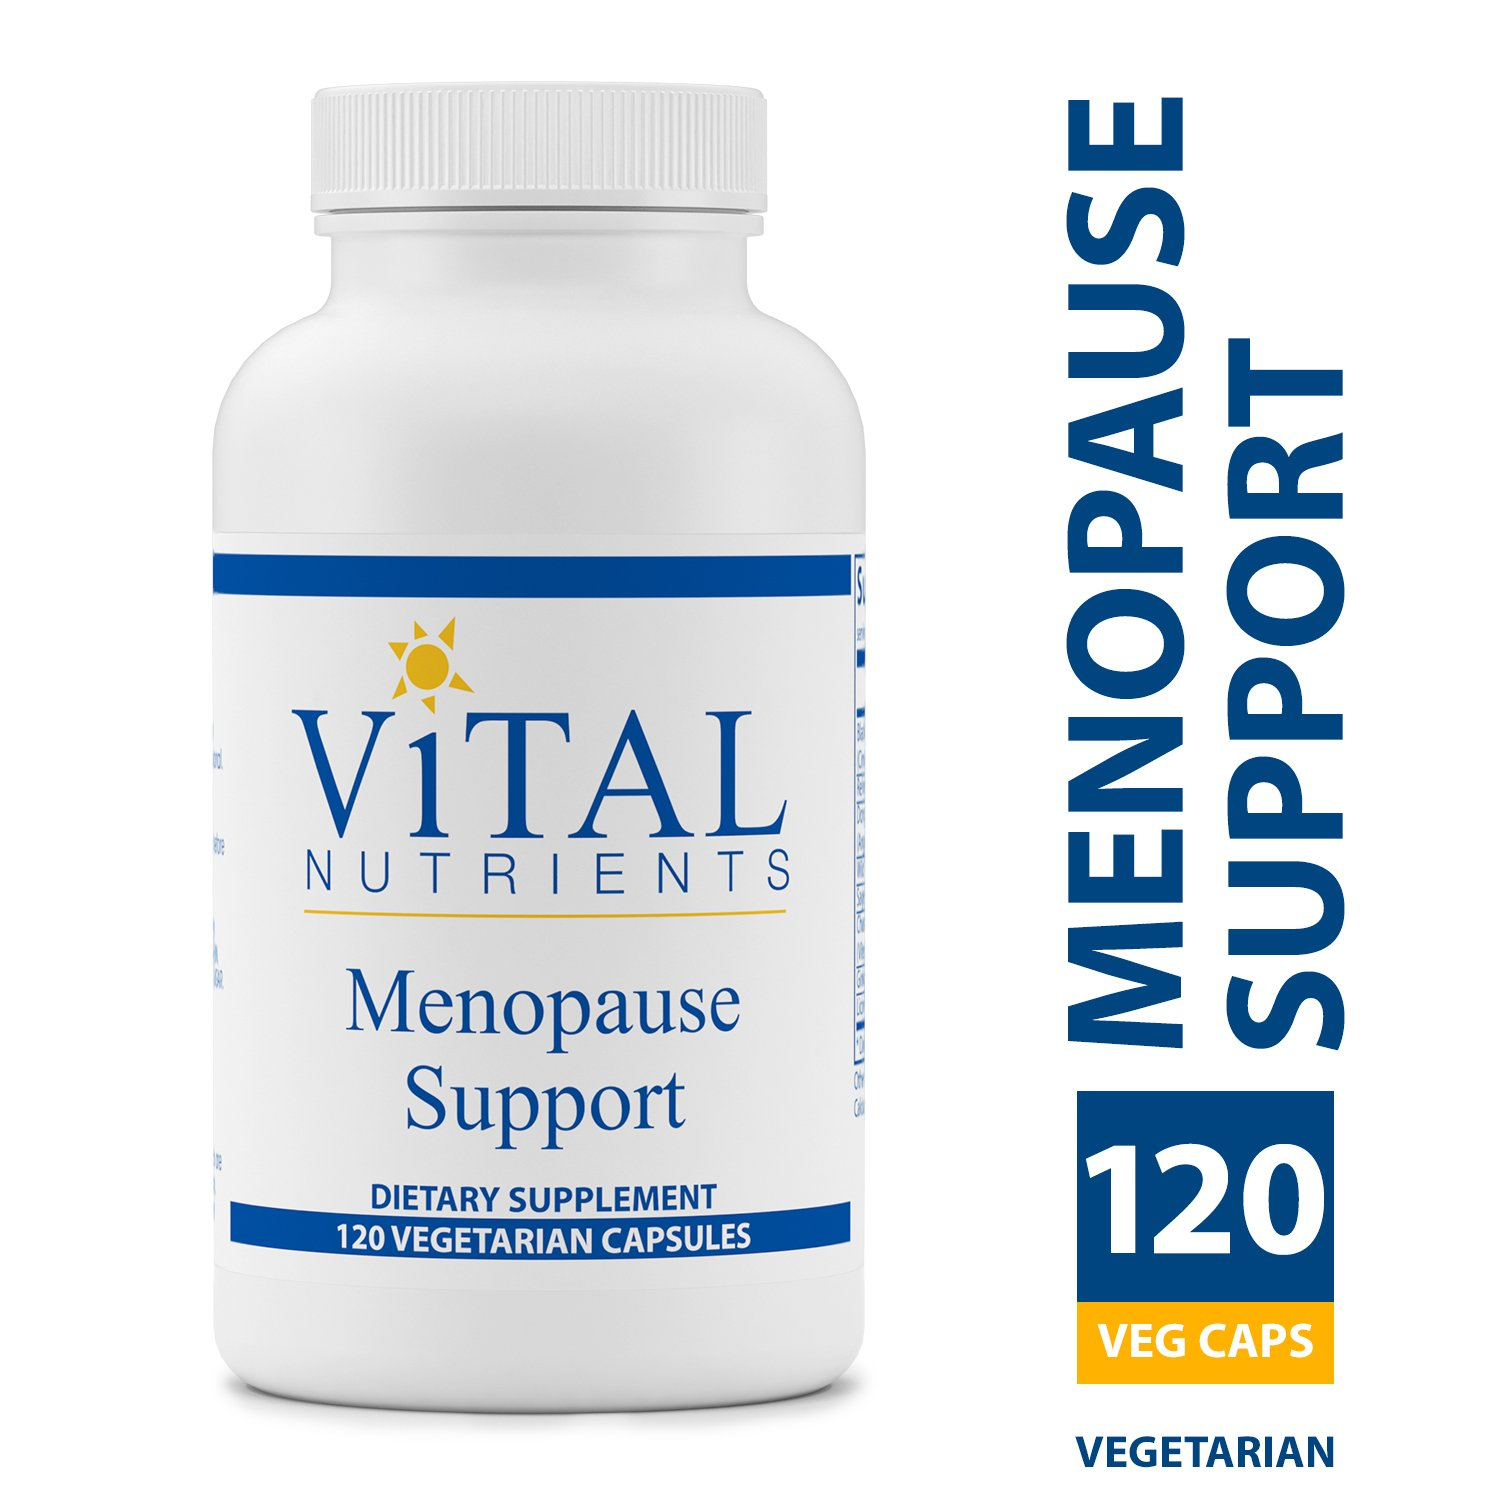 Vital Nutrients - Menopause Support - Herbal Combination Formulated for Support and to help Alleviate Symptoms During Menopause - 120 Capsules per Bottle